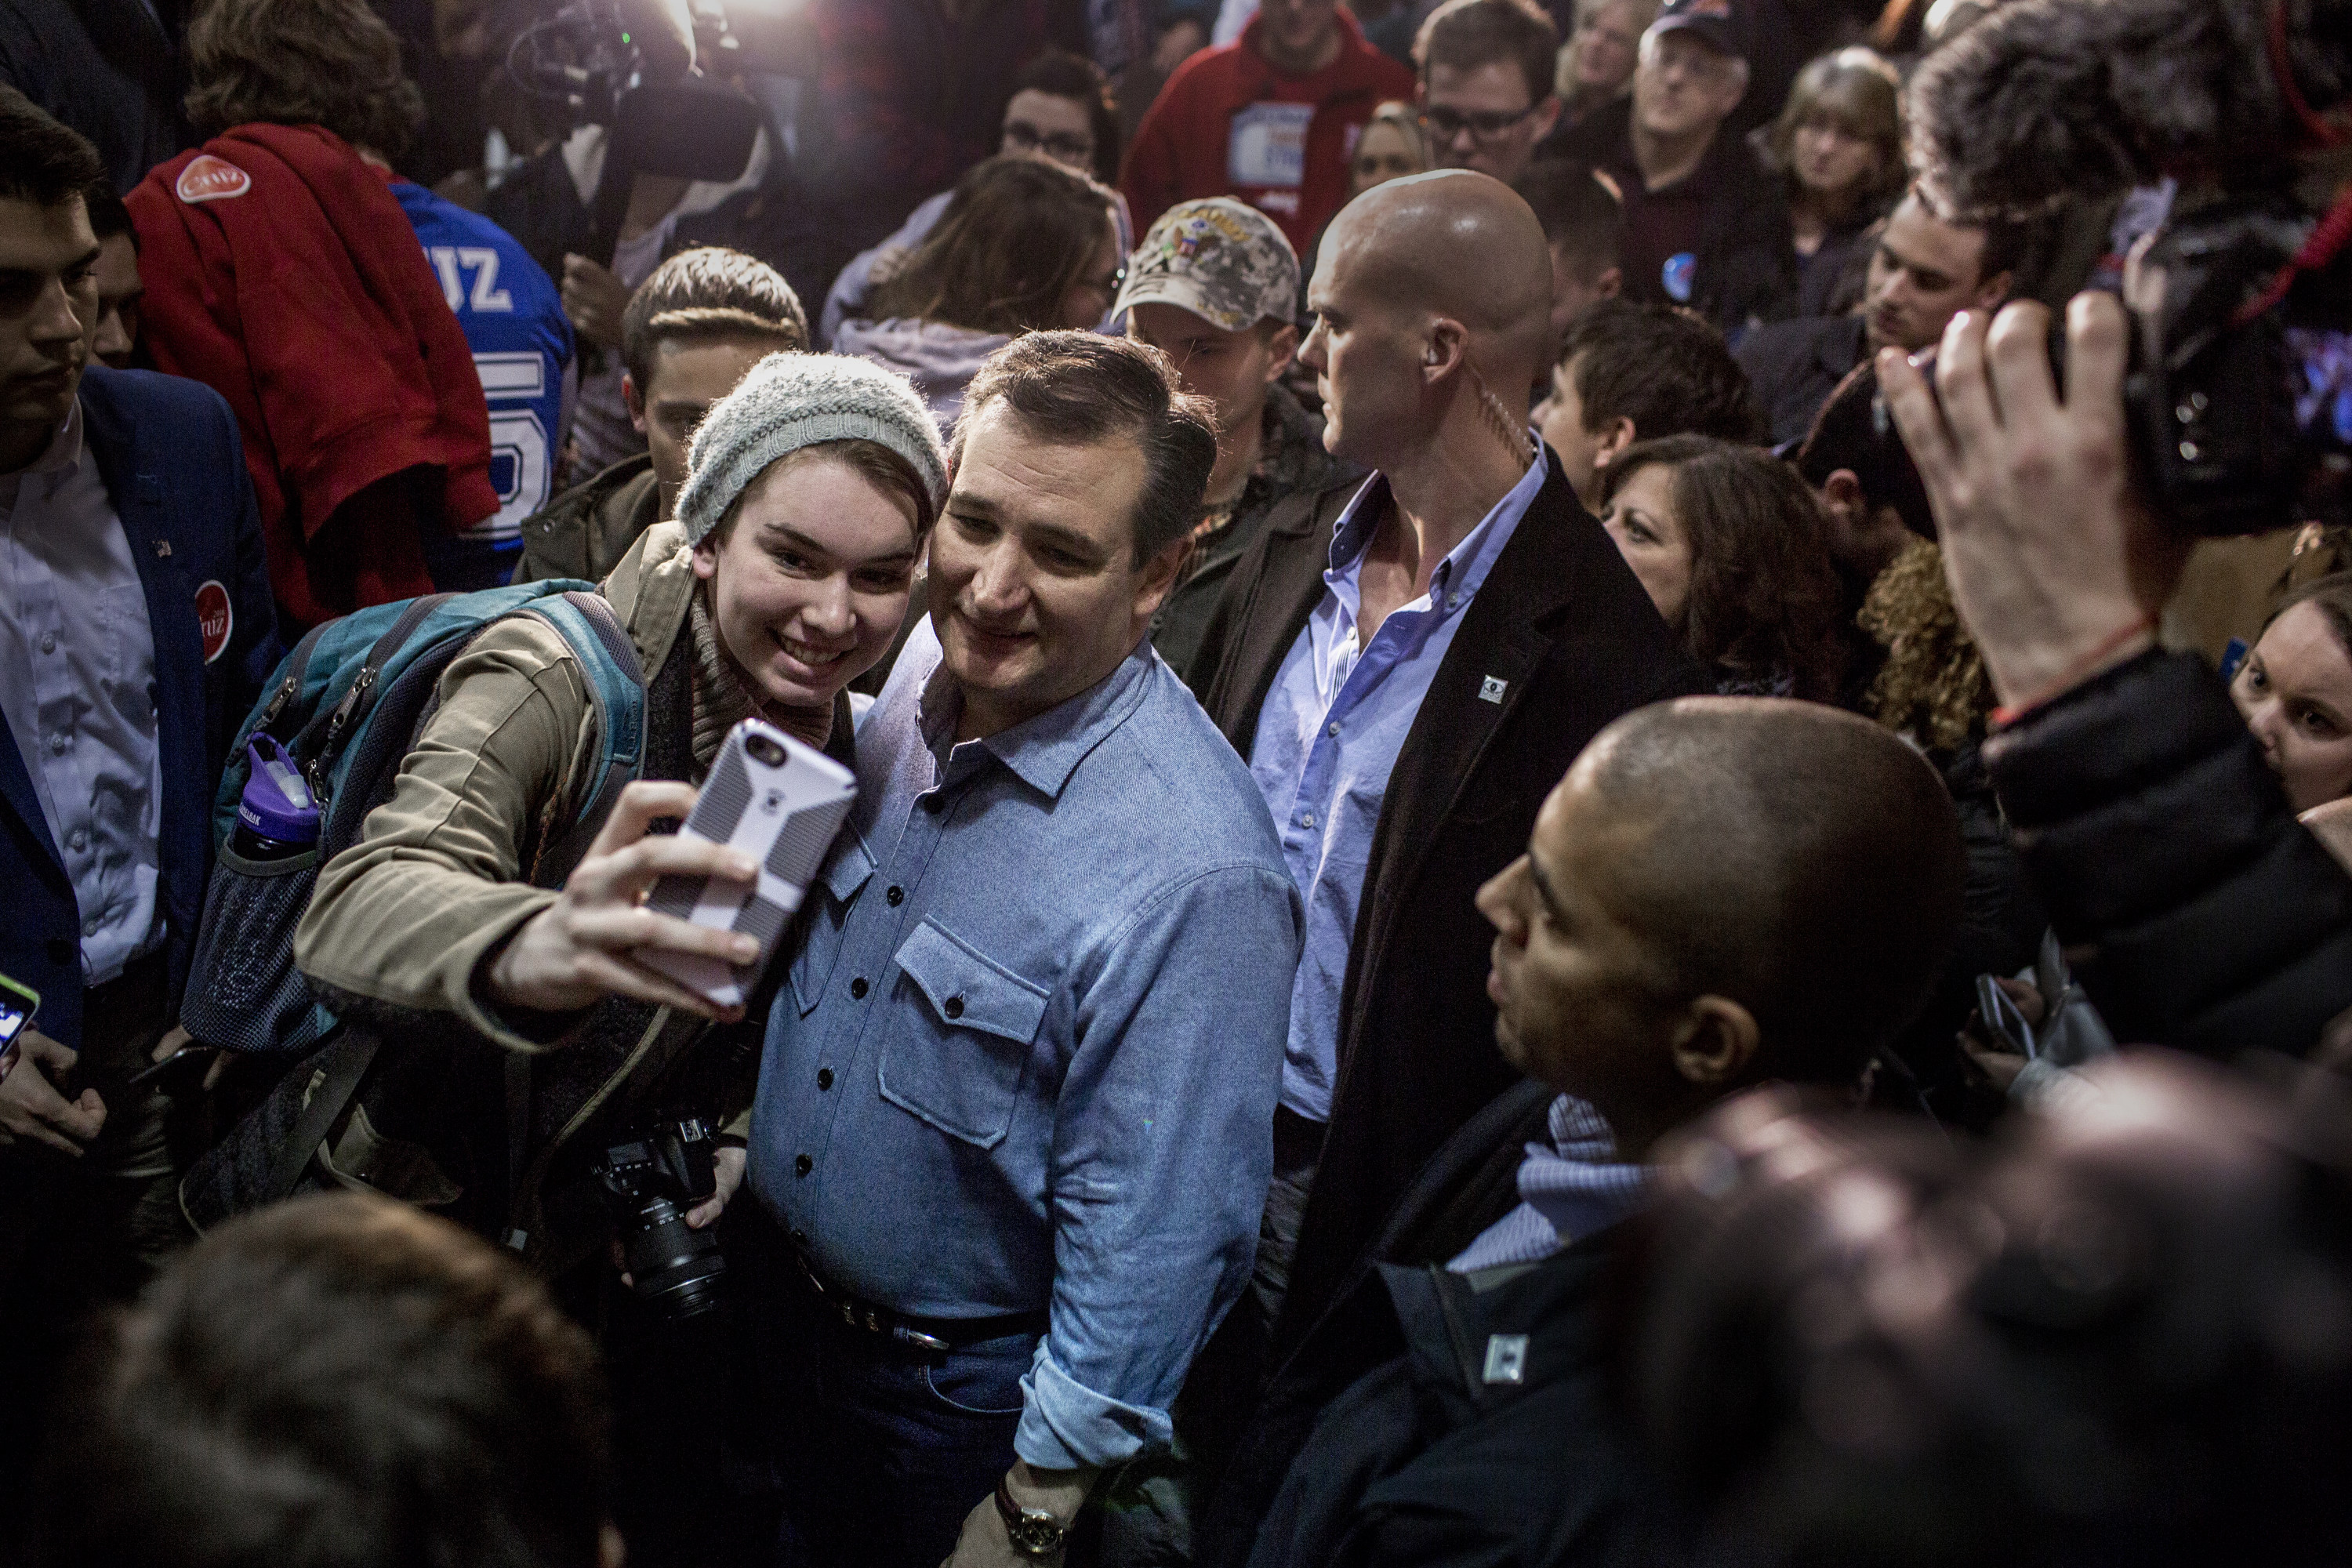 Ted Cruz greets supporters at his rally in Des Moines, Iowa on Jan. 31, 2016.